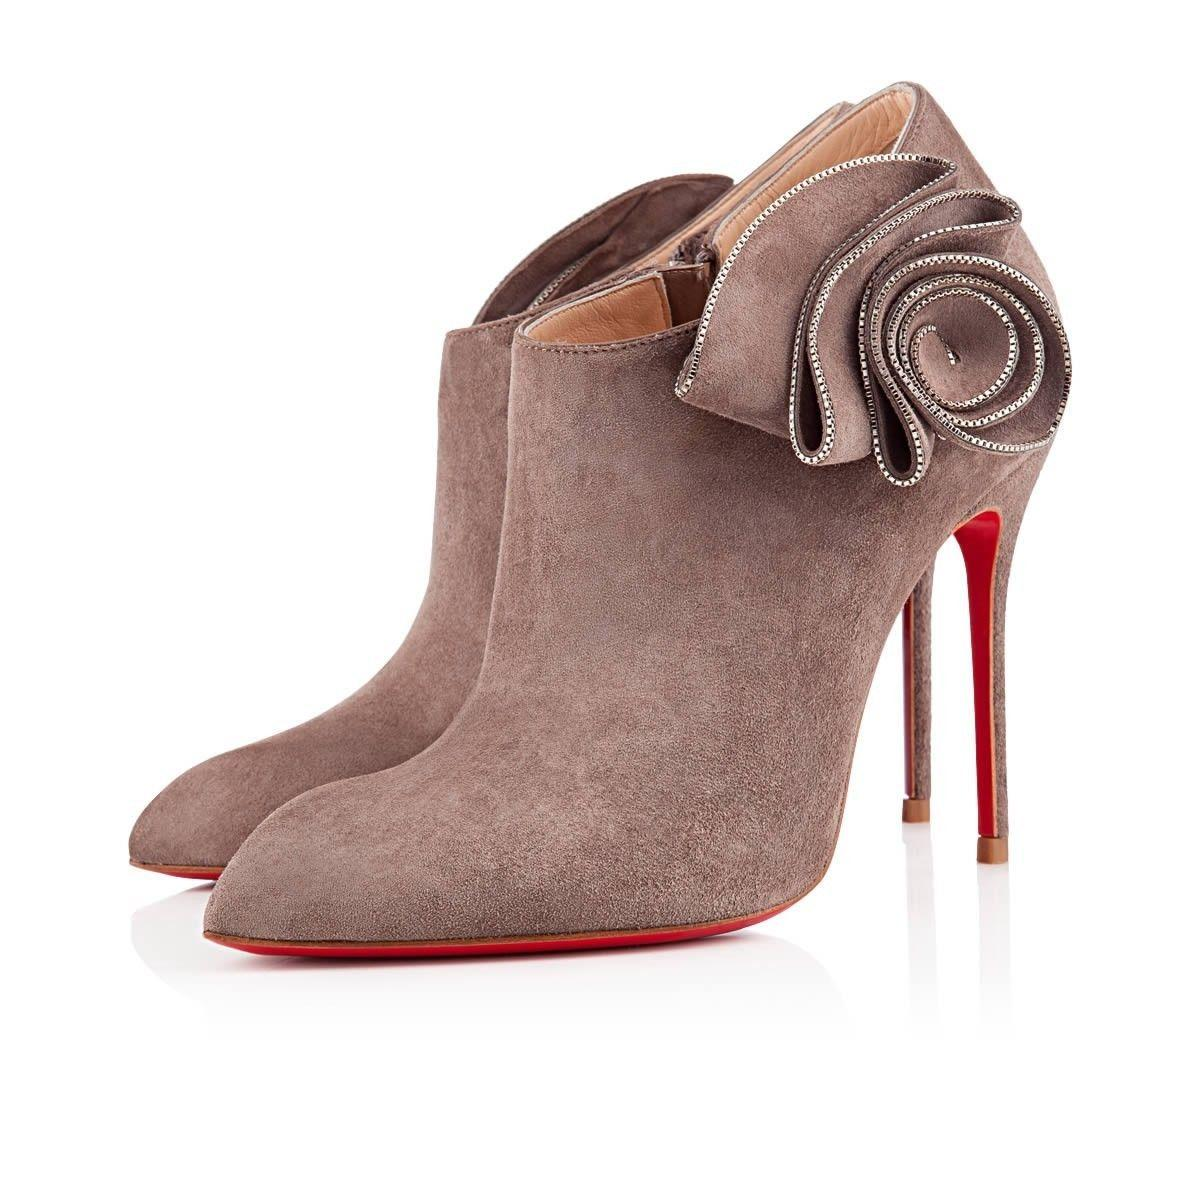 Christian Louboutin Grey Mrs Baba Suede Ankle Heels 39.5 Boots/Booties Size US 9.5